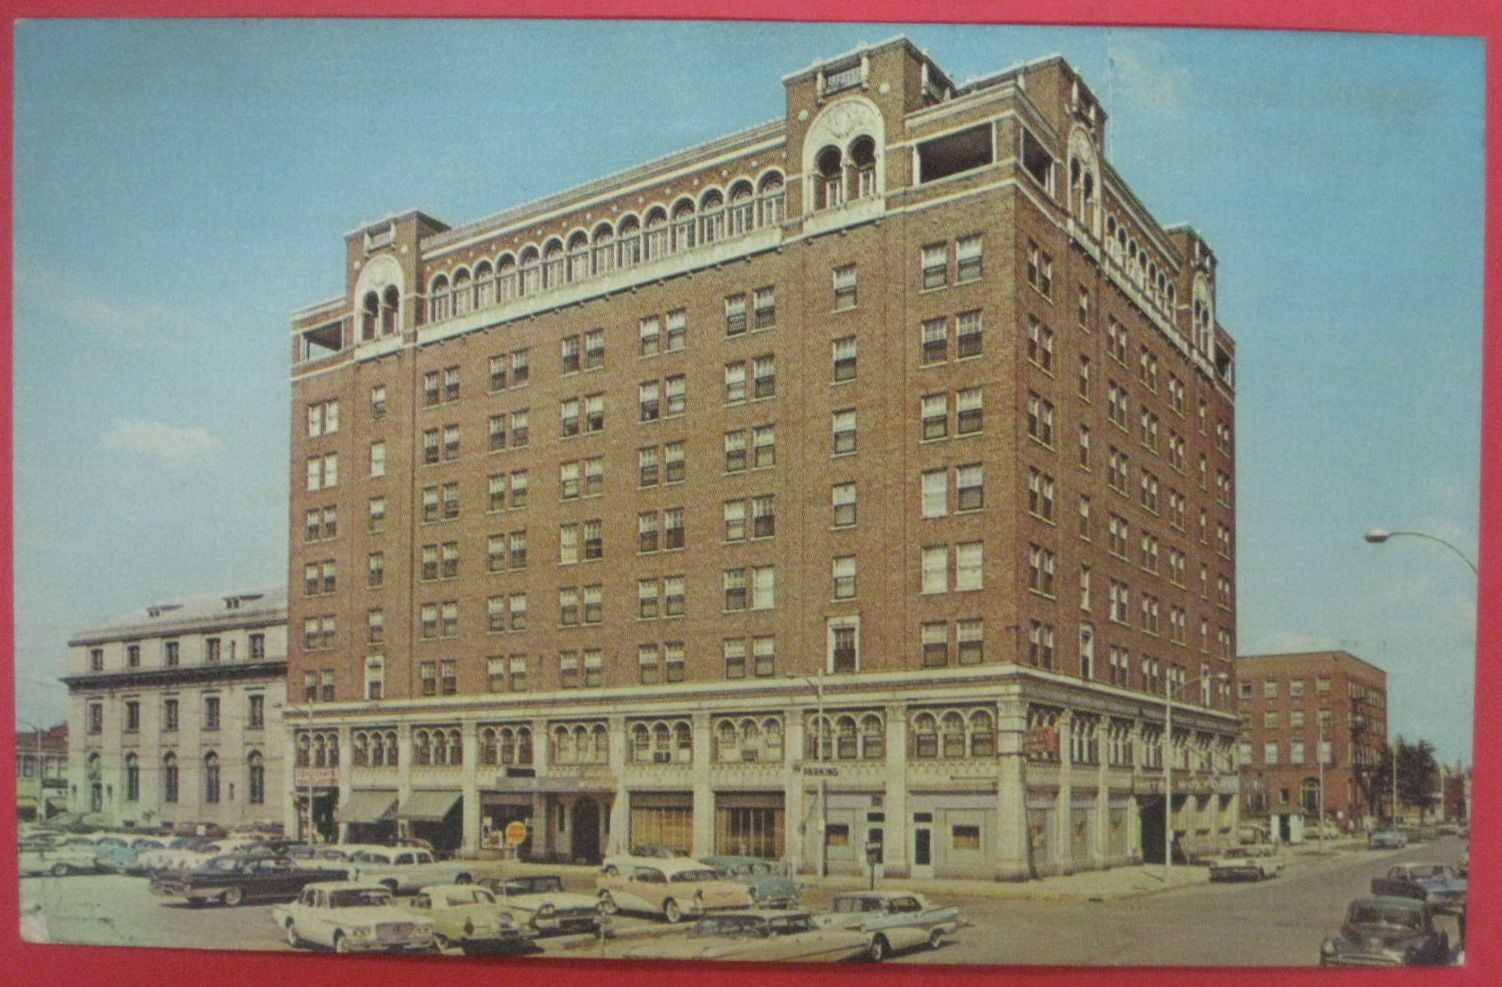 Danville Il Hotel Wolford Vintage Uncirculated Postcard Advertising Year